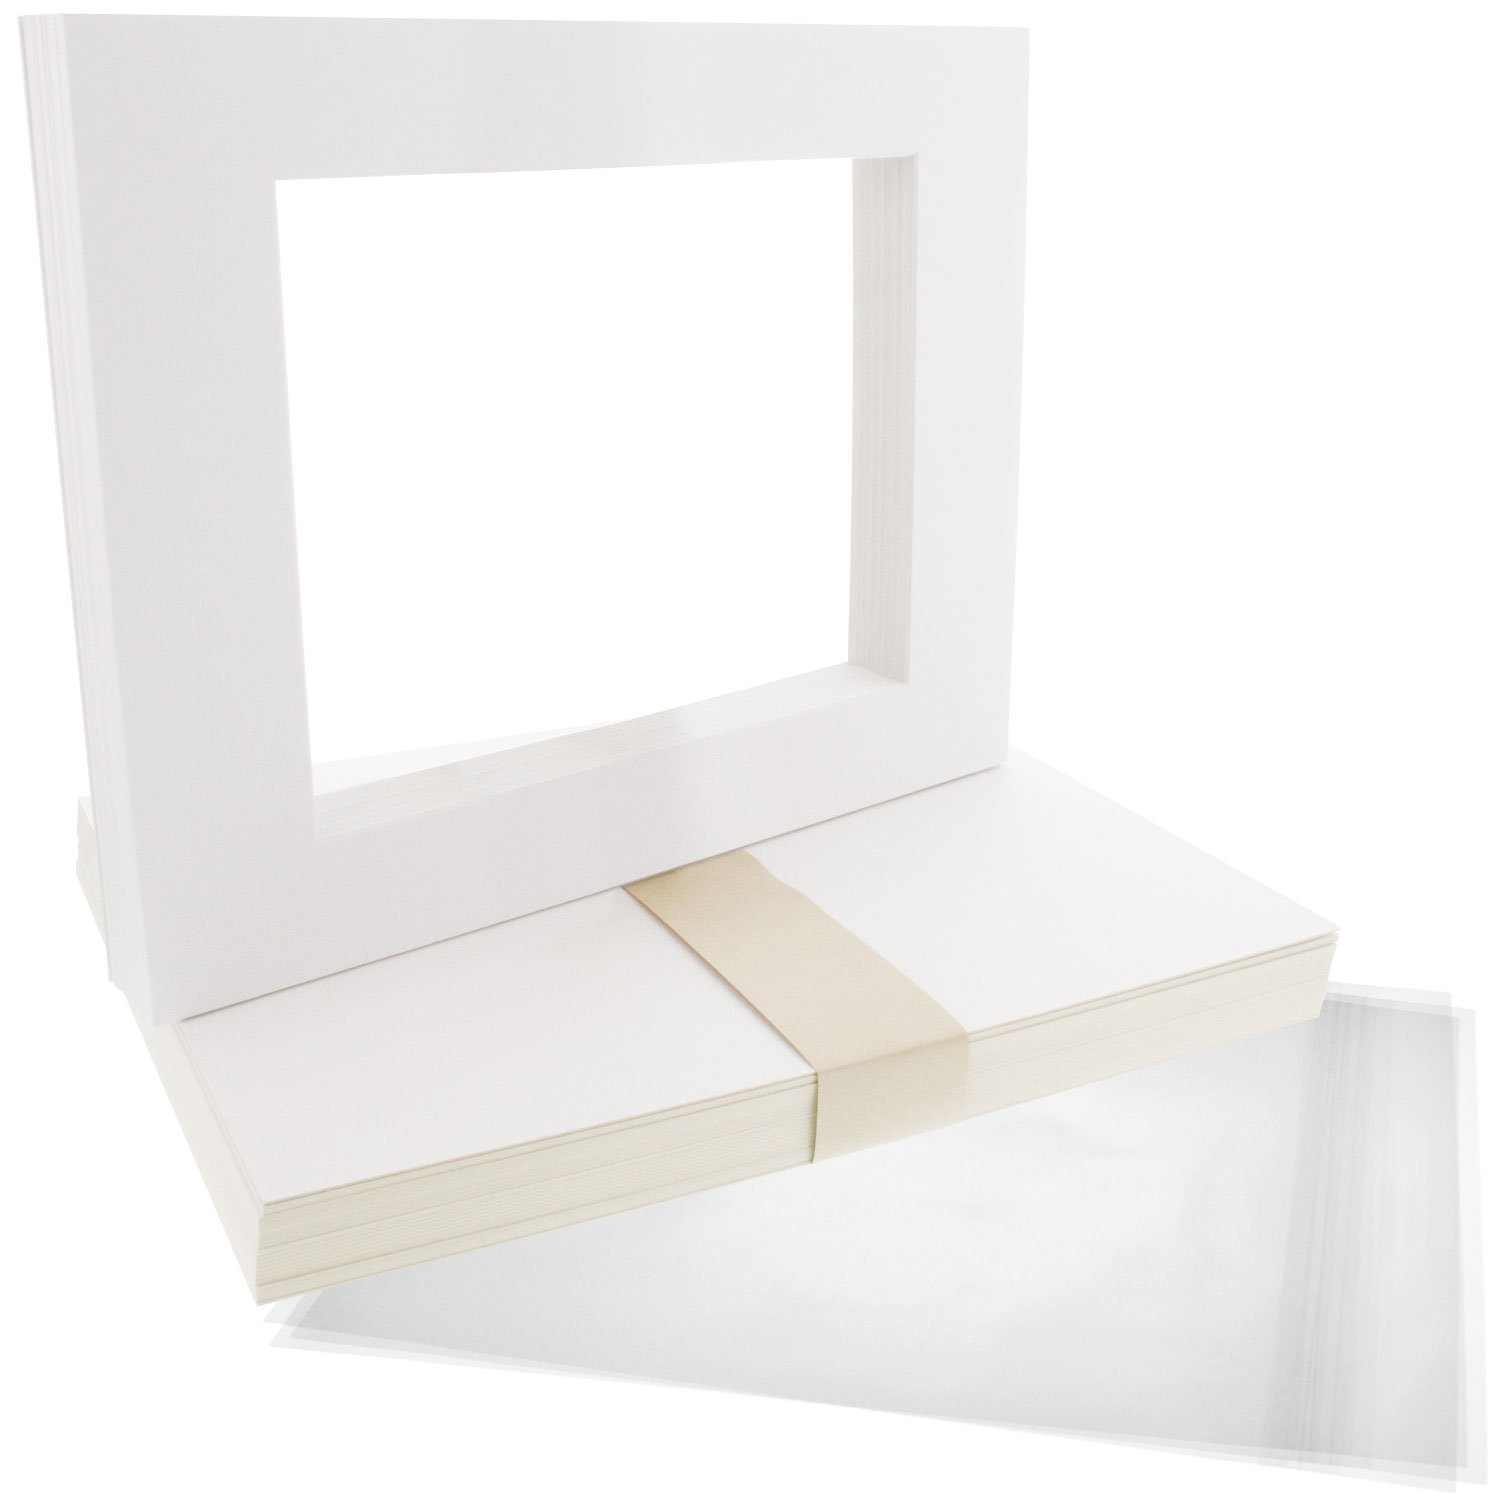 US Art Supply Art Mats Acid-Free Pre-Cut 11x14 White Picture Mat Matte Sets. Includes a Pack of 25 White Core Bevel Cut Mattes for 8x10 Photos, Pack of 25 Backers & 25 Clear Sleeve Bags